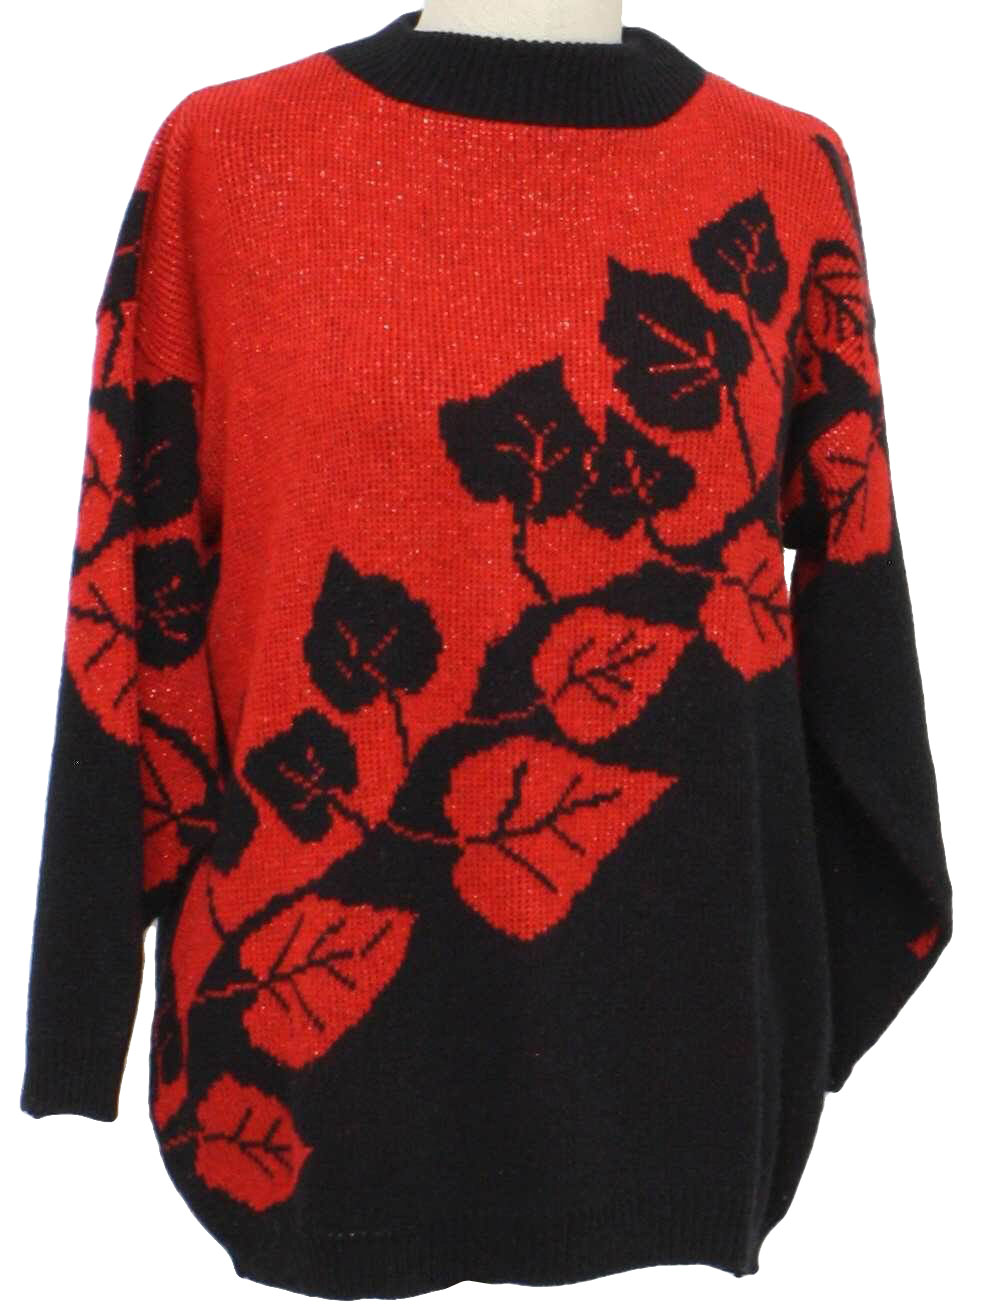 Retro 80s Sweater Rose 80s Rose Womens Black And Shiney Red